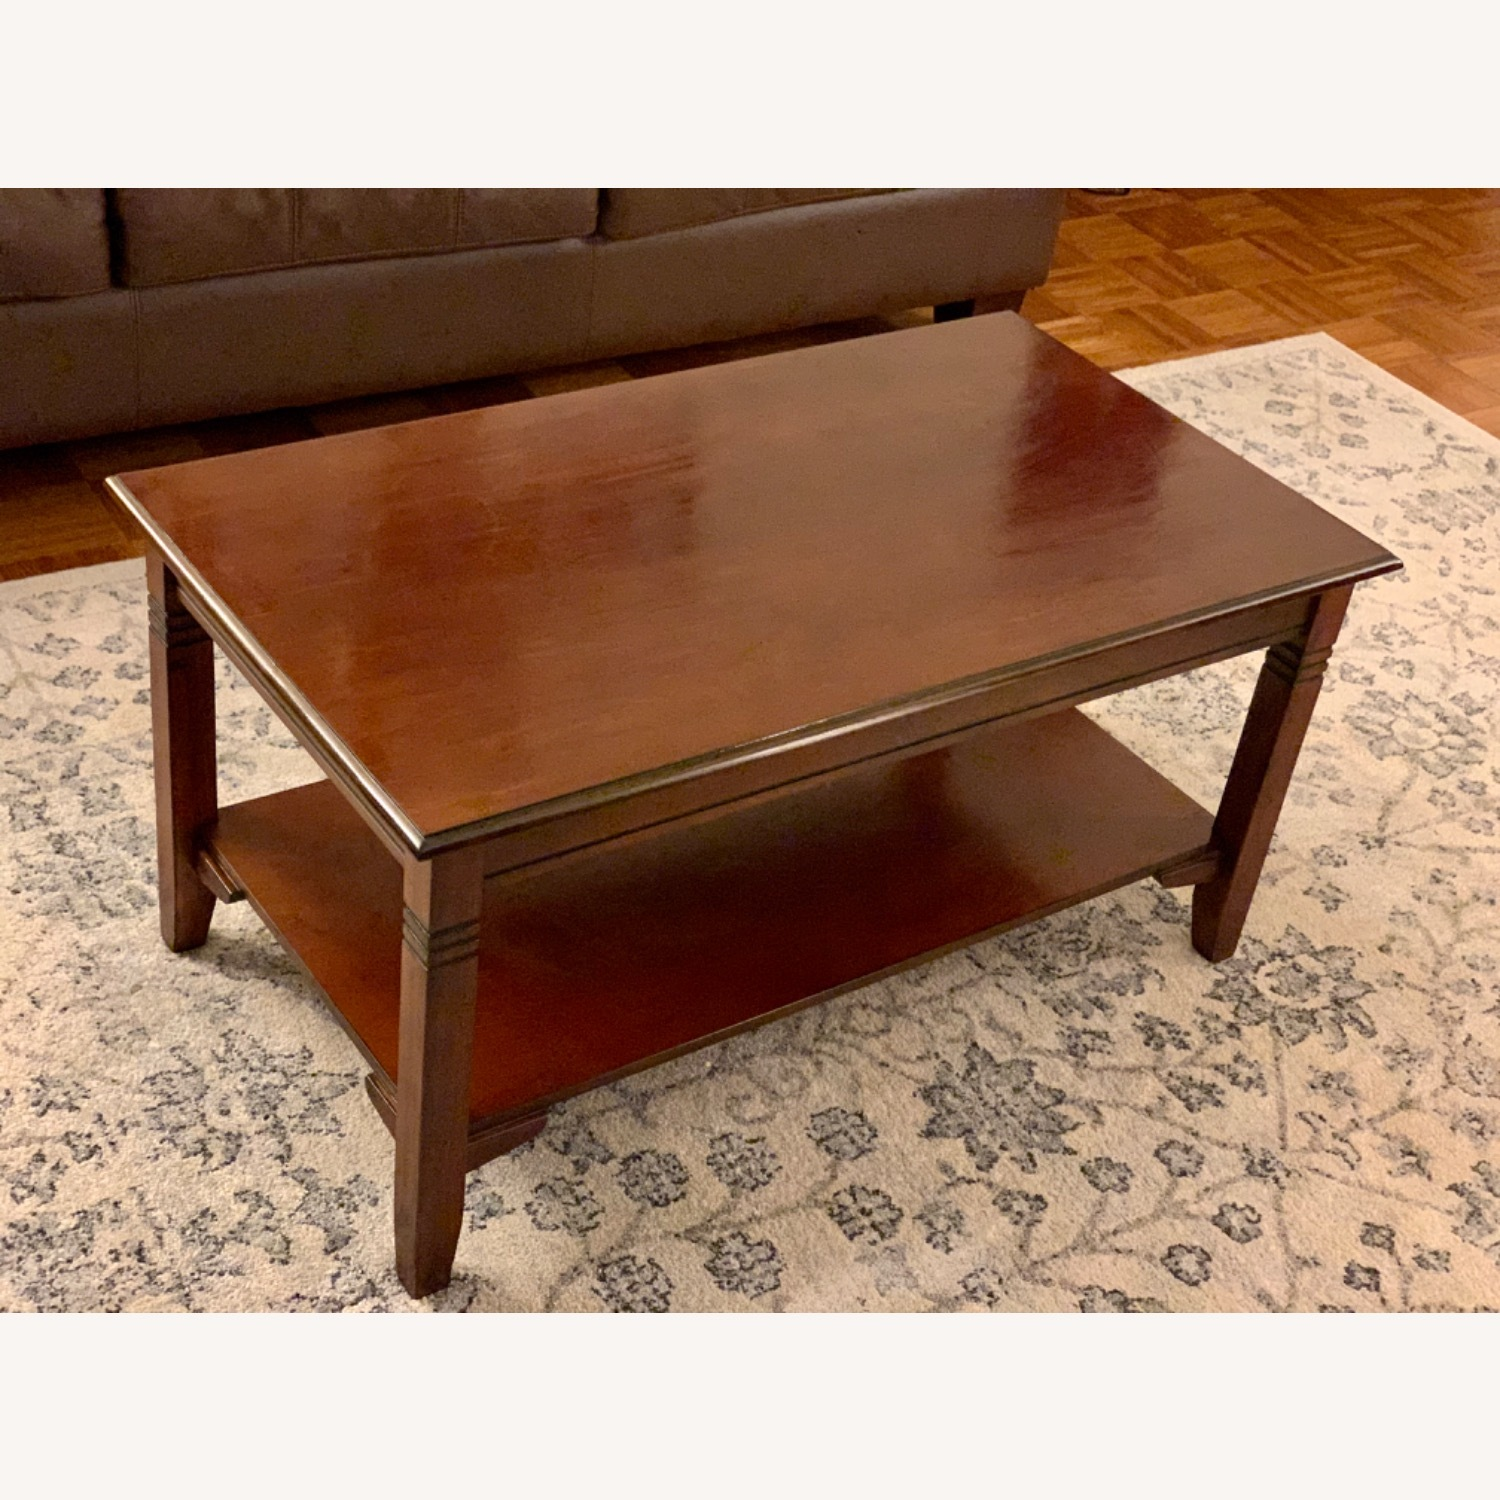 Wayfair Espresso Coffee Table - image-4